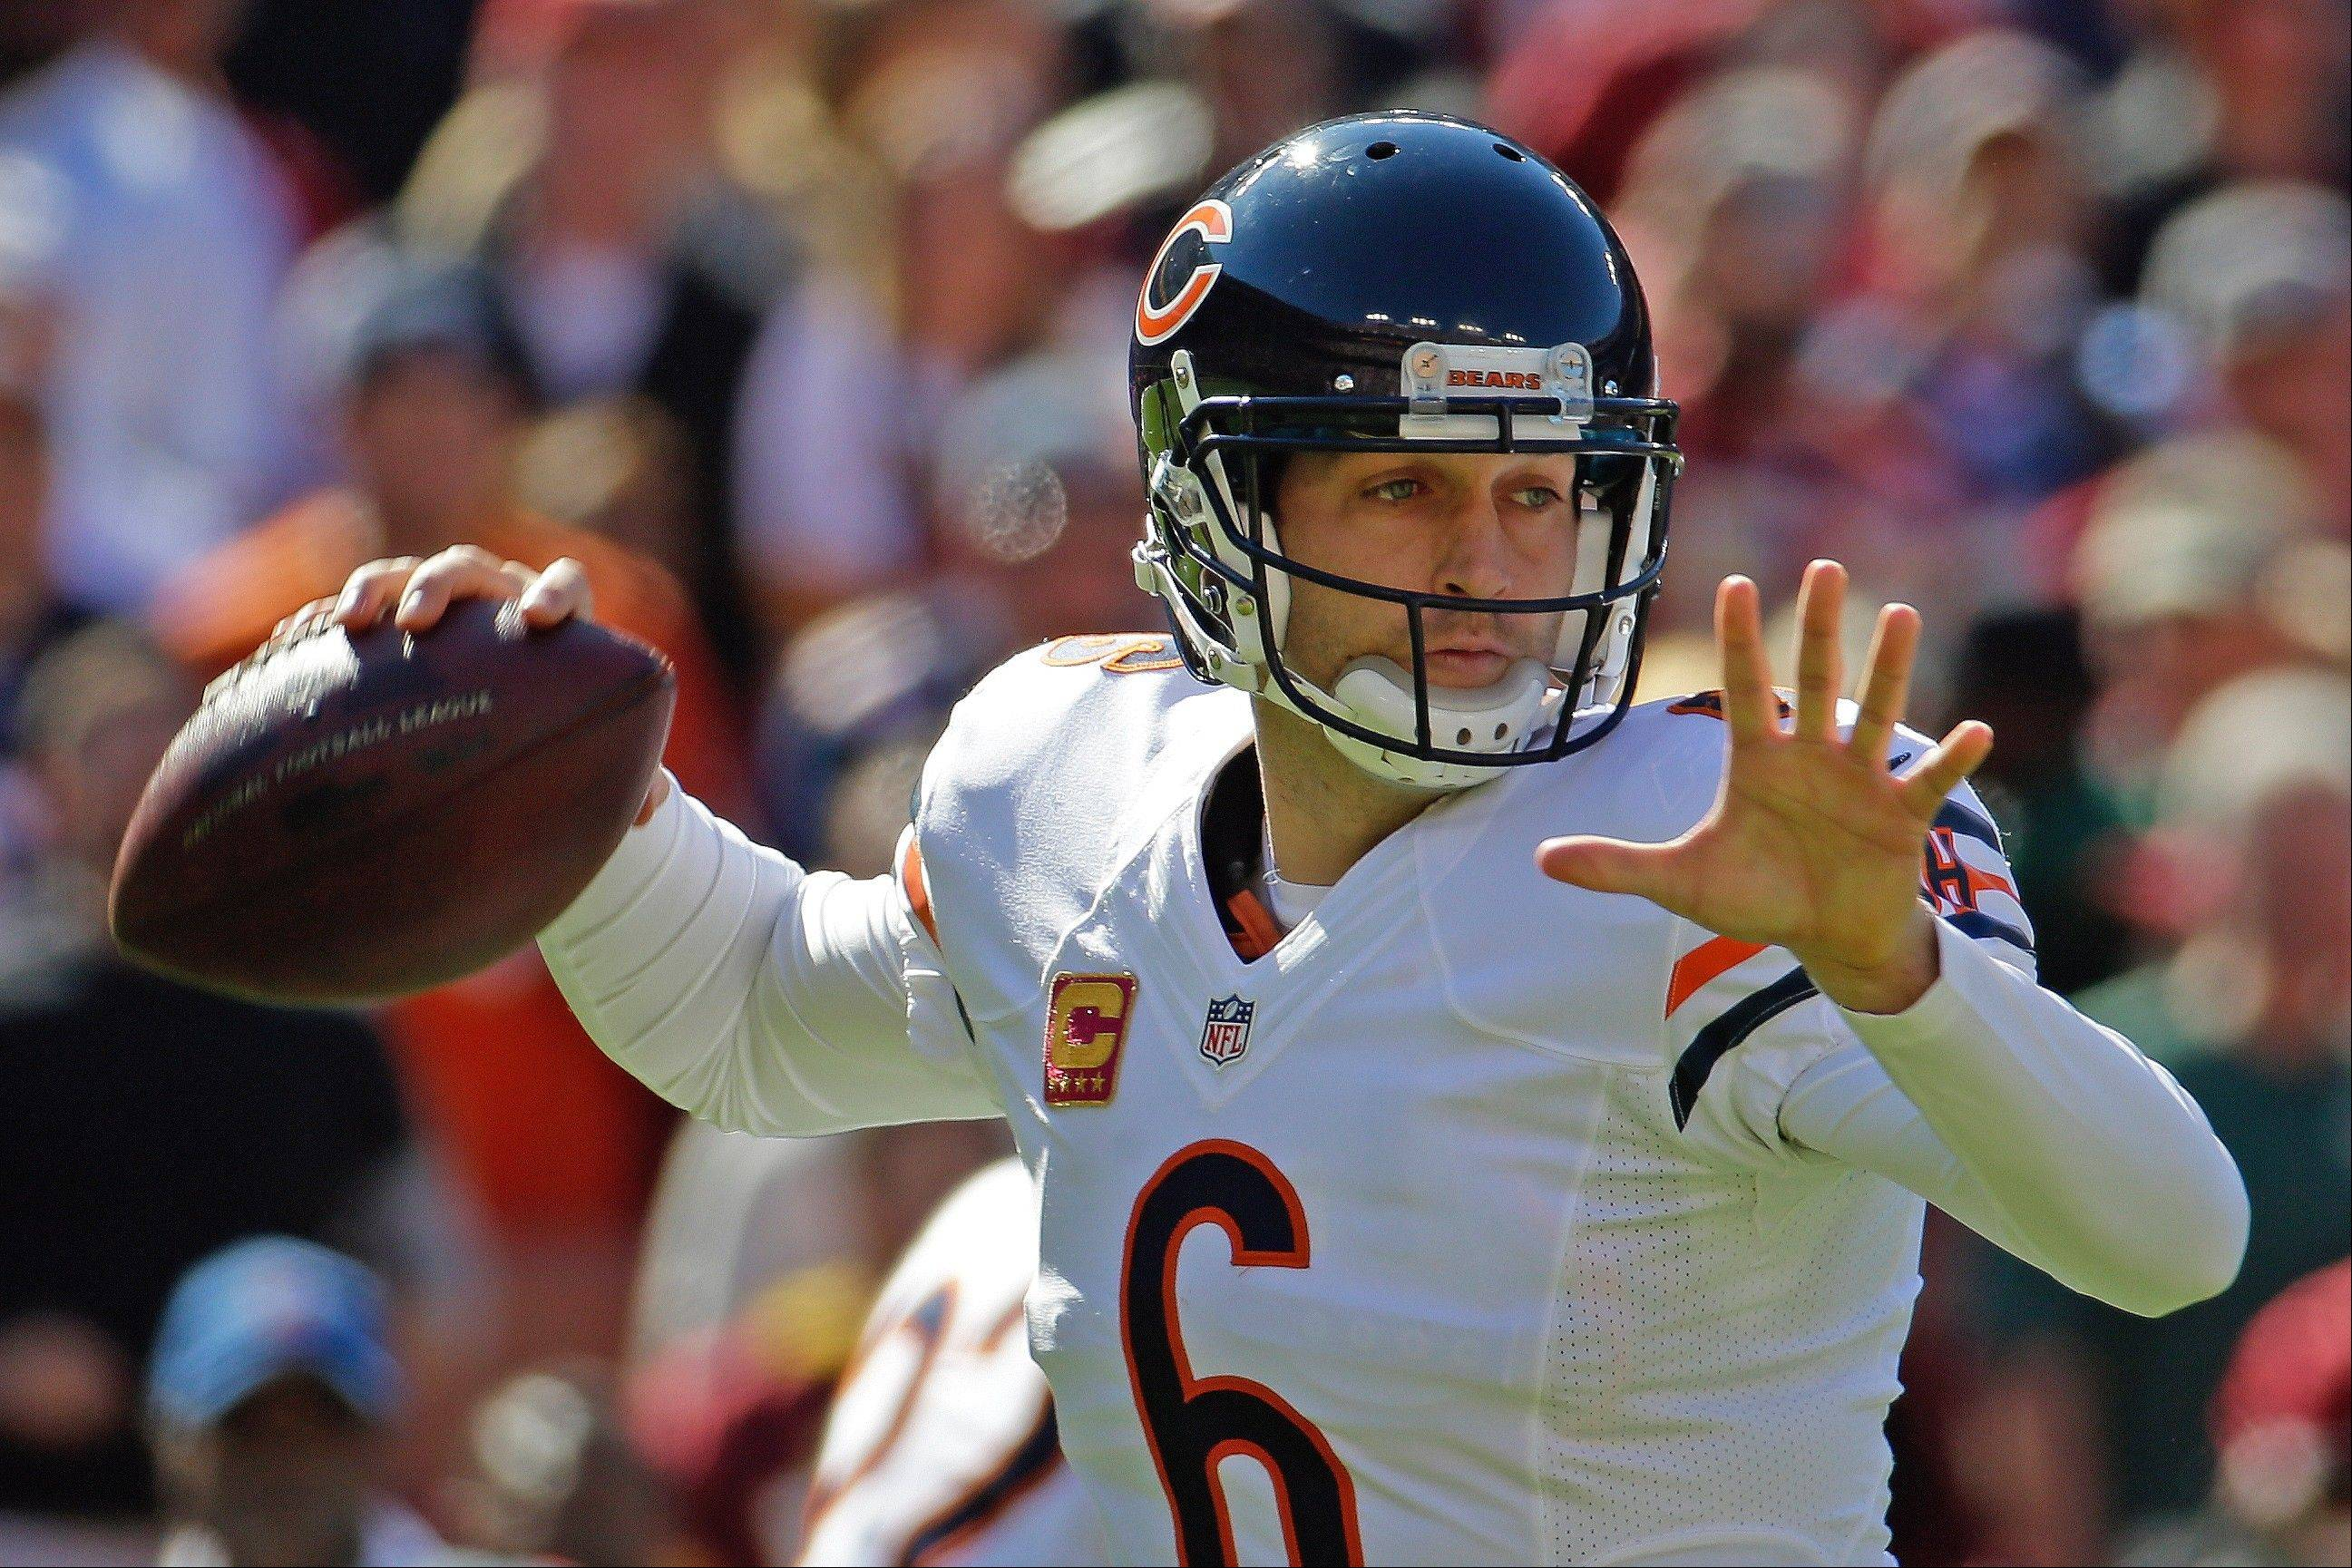 Bears coach Marc Trestman has made it clear that Jay Cutler is his man at quarterback.